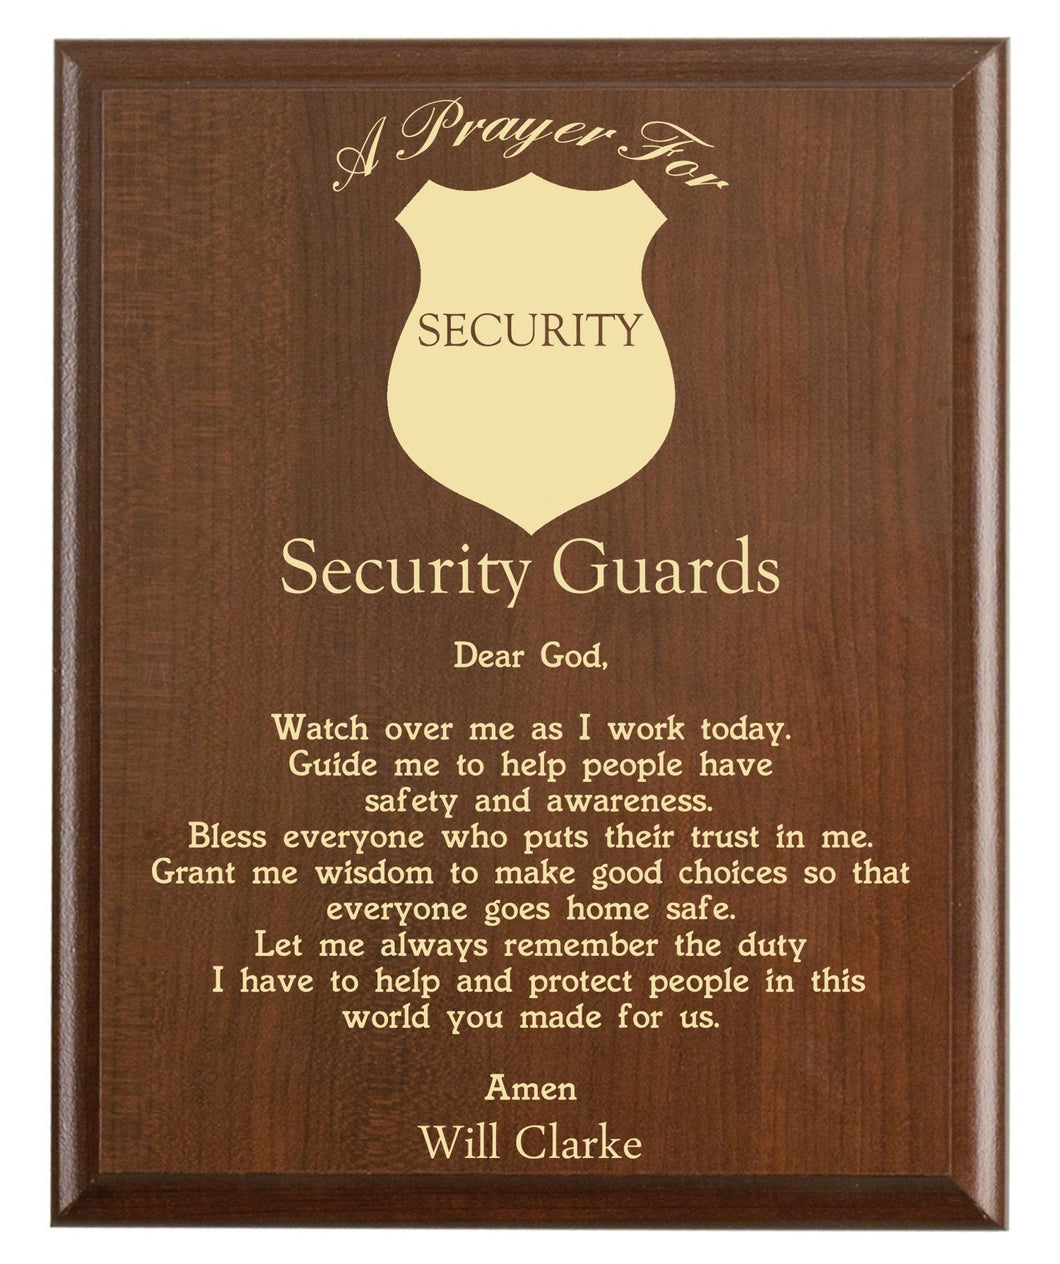 Christian prayer for a security guard with industry logo and free personalization. Cherry finish with laser engraved text.